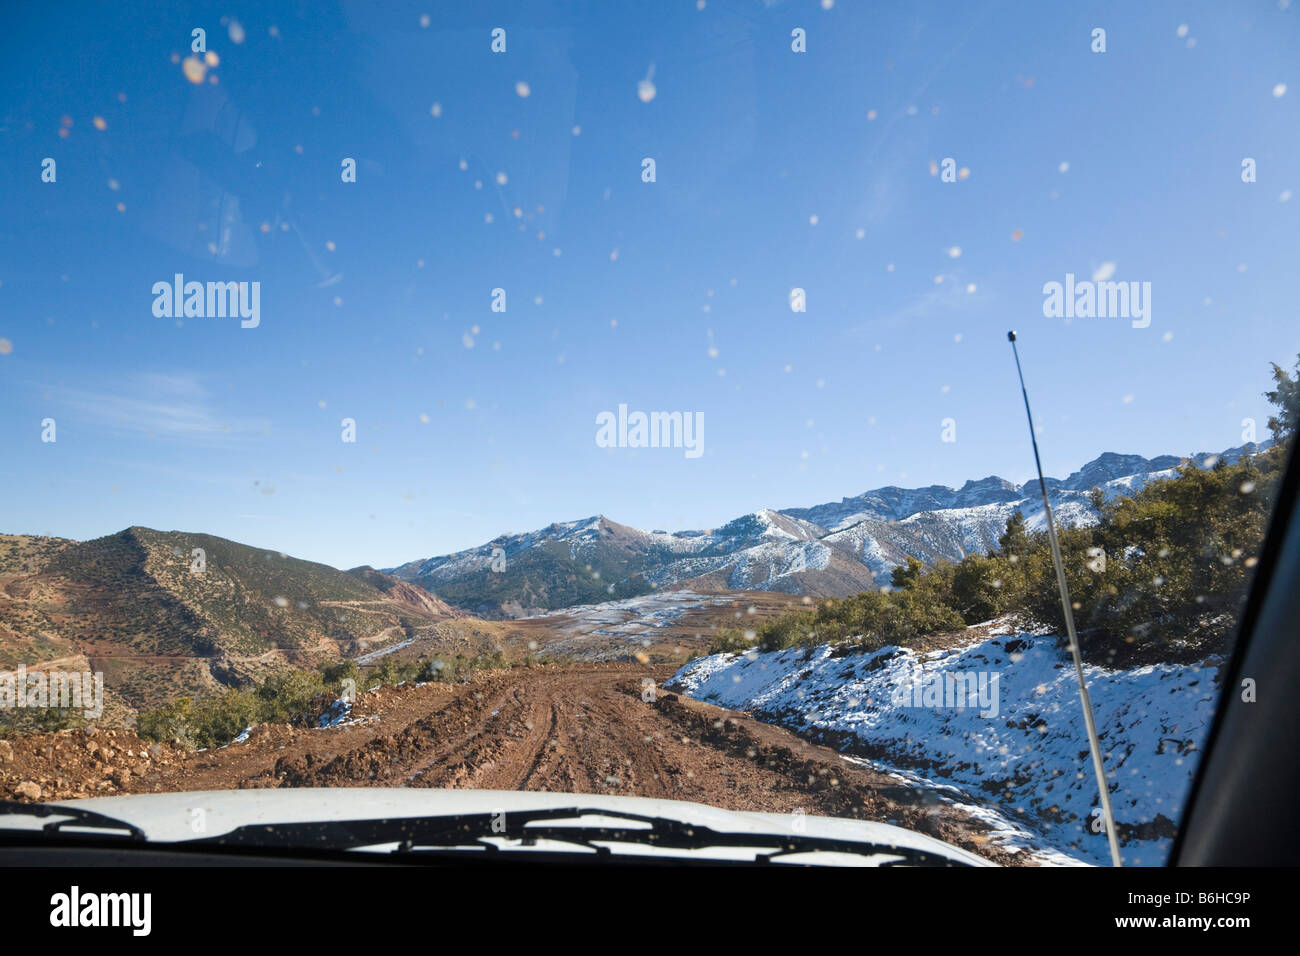 View through muddy windscreen of 4x4 offroad safari vehicle on dirt road in High Atlas Mountains in winter. Asni - Stock Image